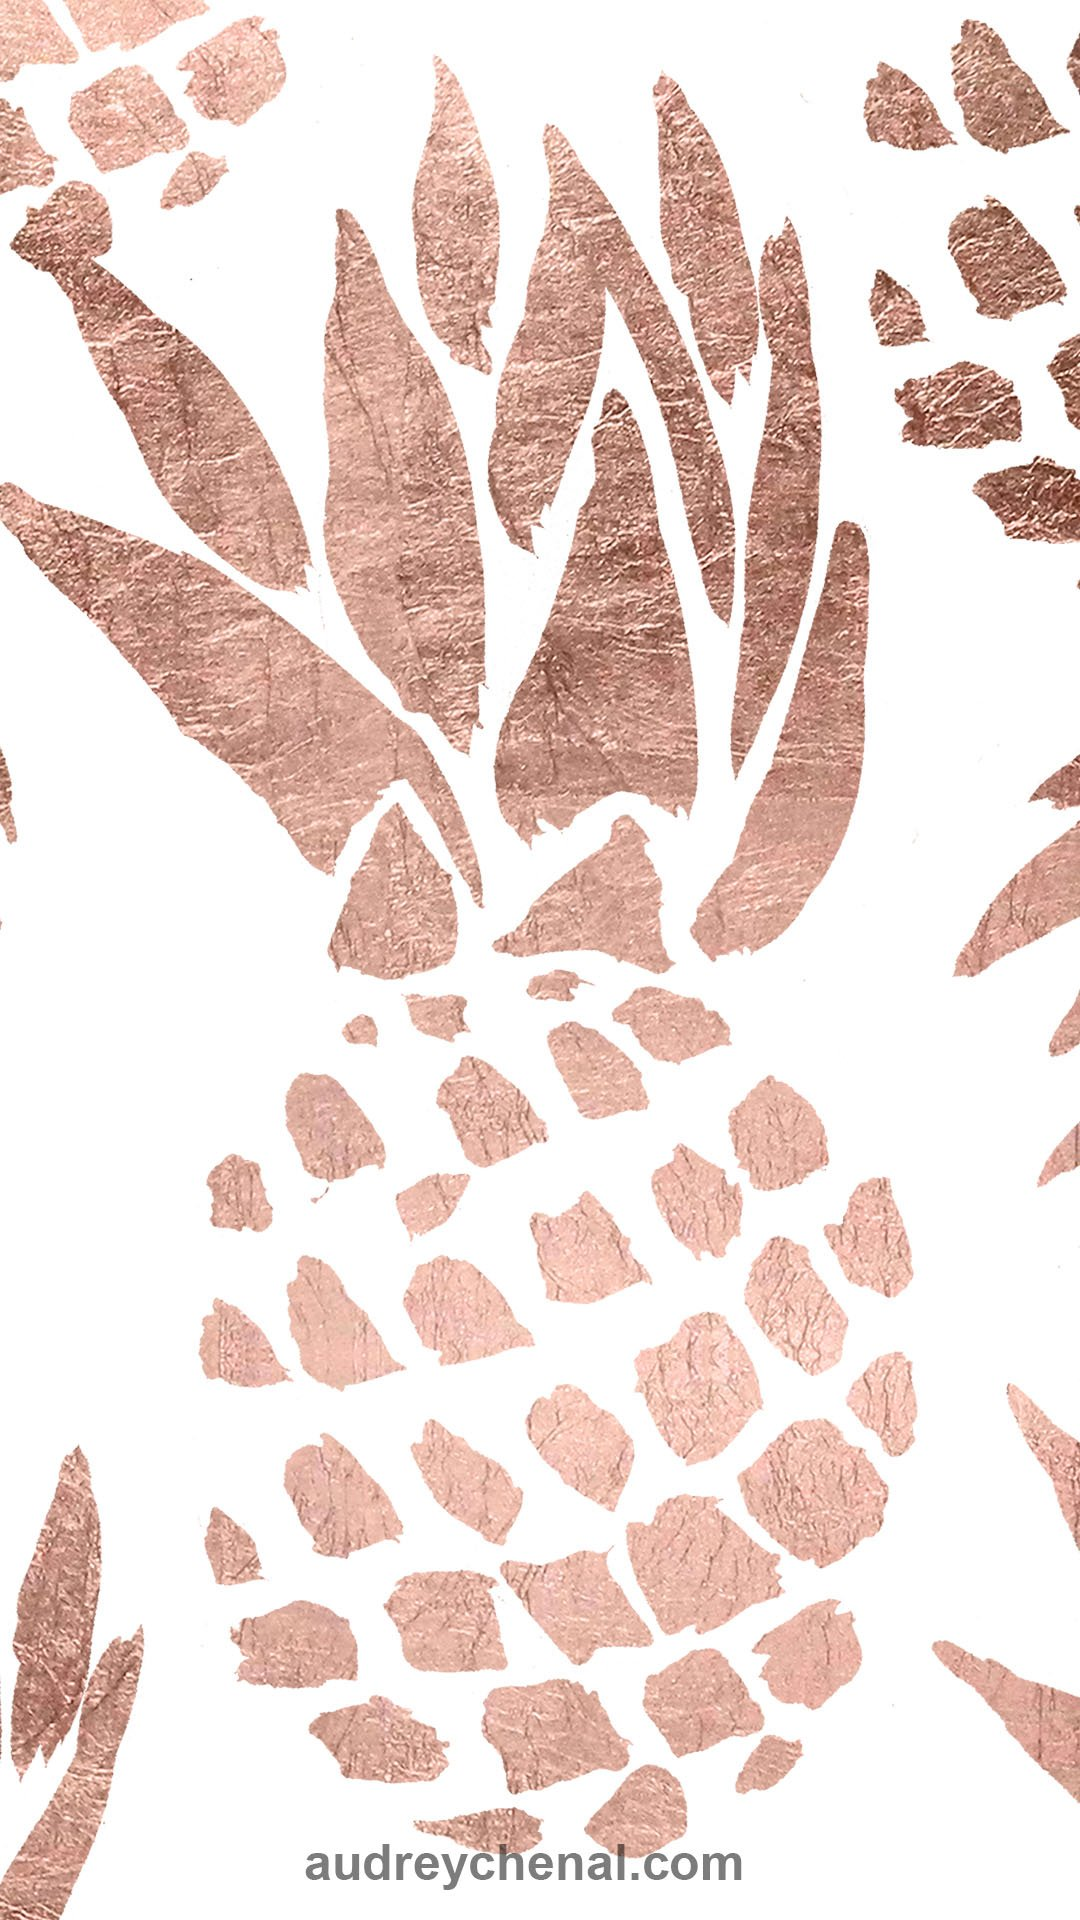 rose gold handdrawn pineapple free wallpaper by Audrey Chenal